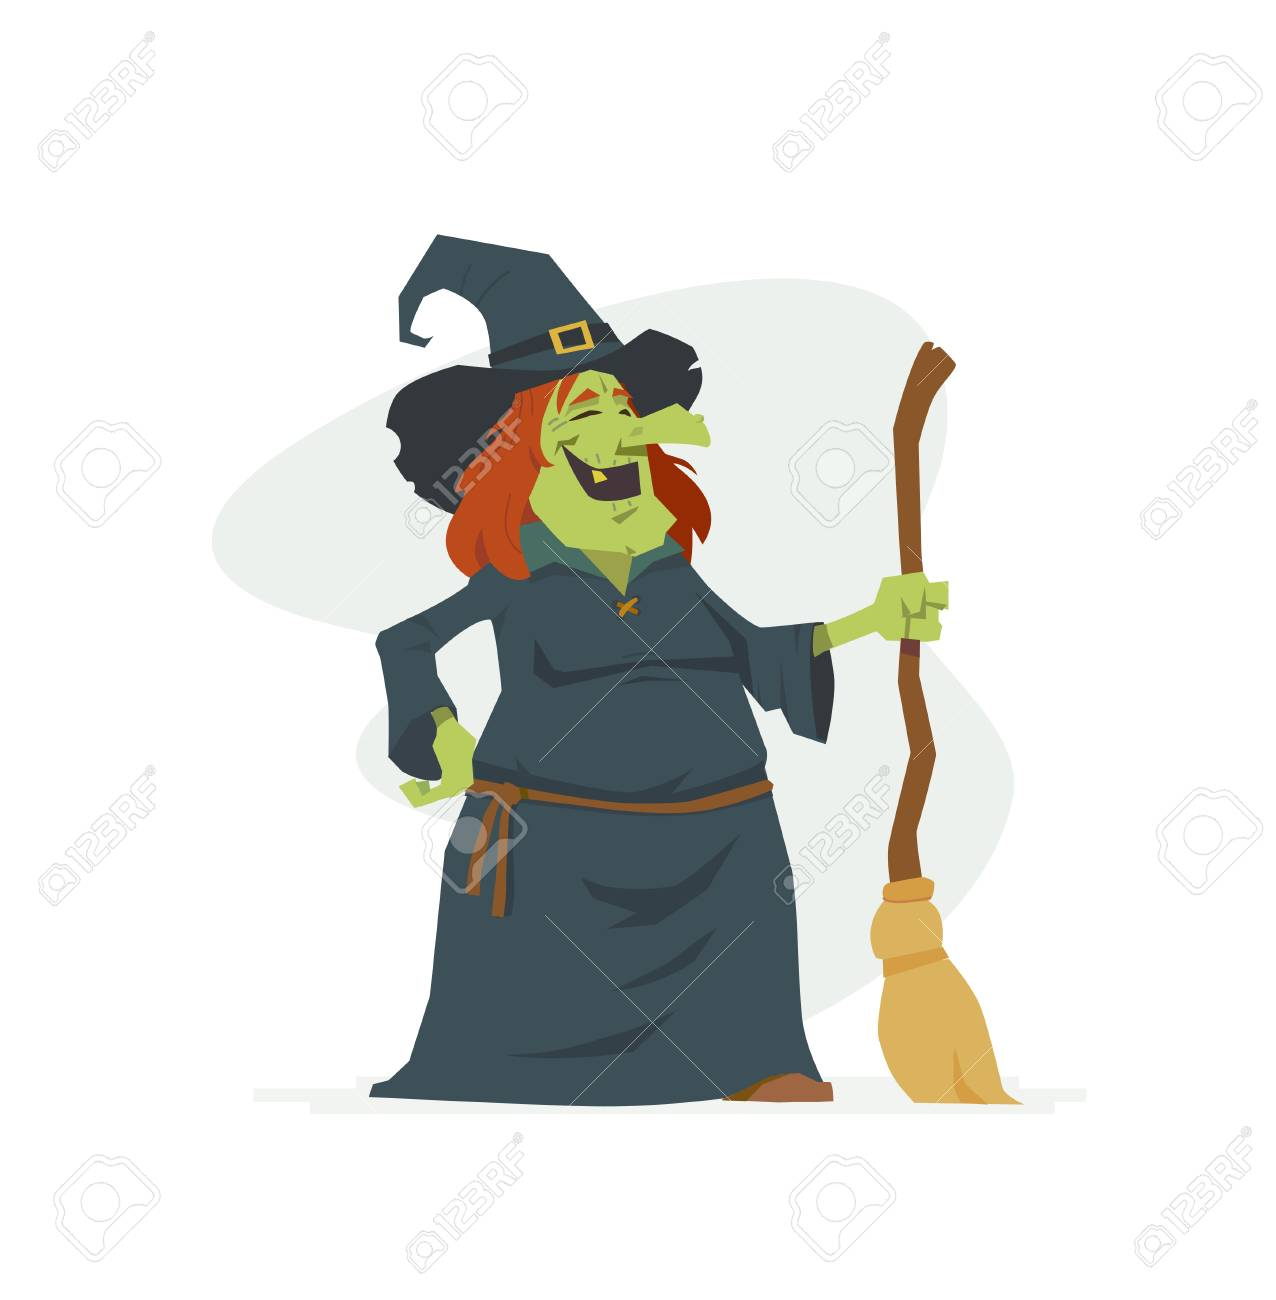 Witch - cartoon people characters isolated illustration on white background. Laughing Halloween symbol with a broom and a hat. Perfect for banners and presentations - 111956256